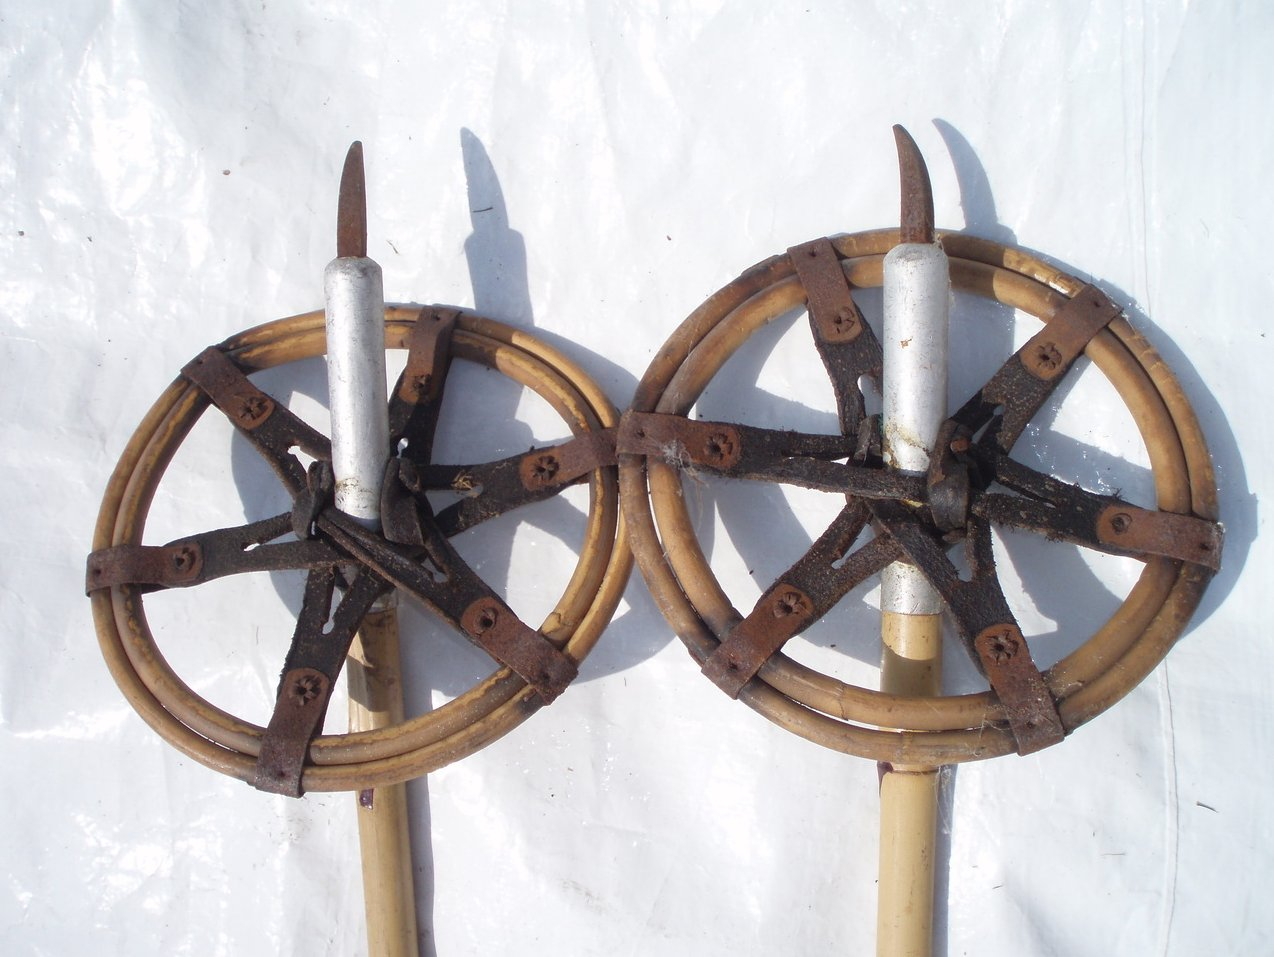 Vintage Bamboo and leather ski poles